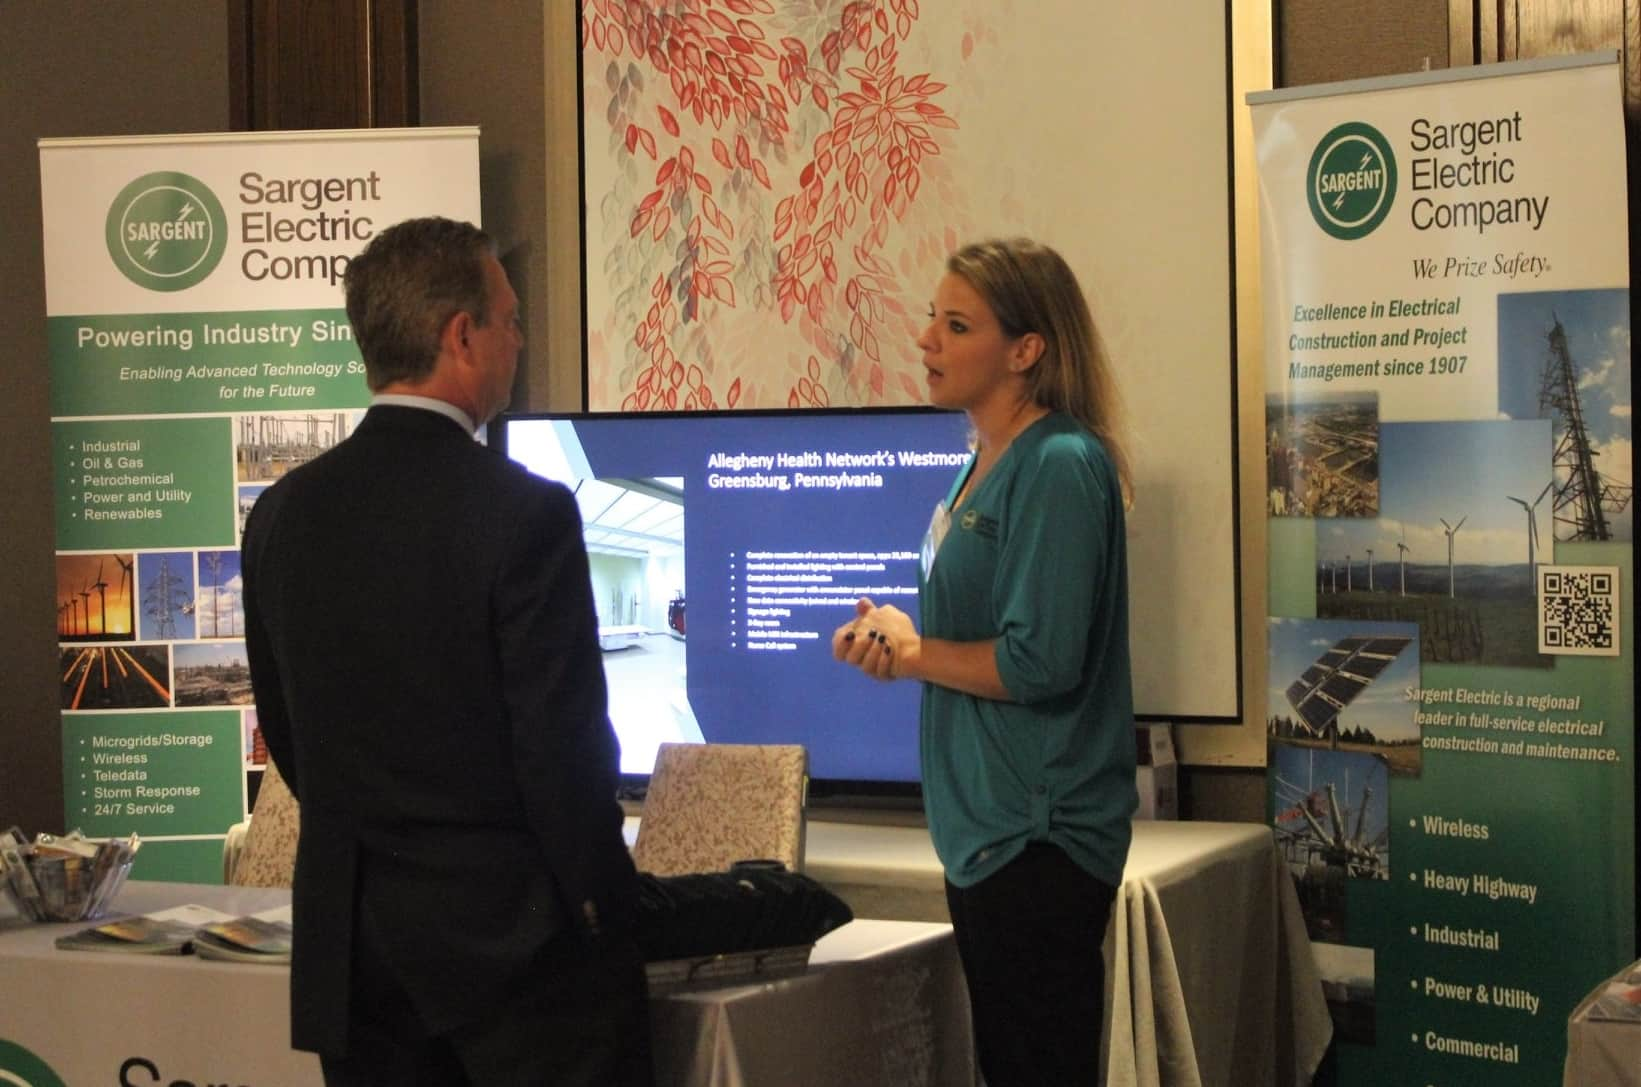 Sargent Electric staff talk to attendees at the conference